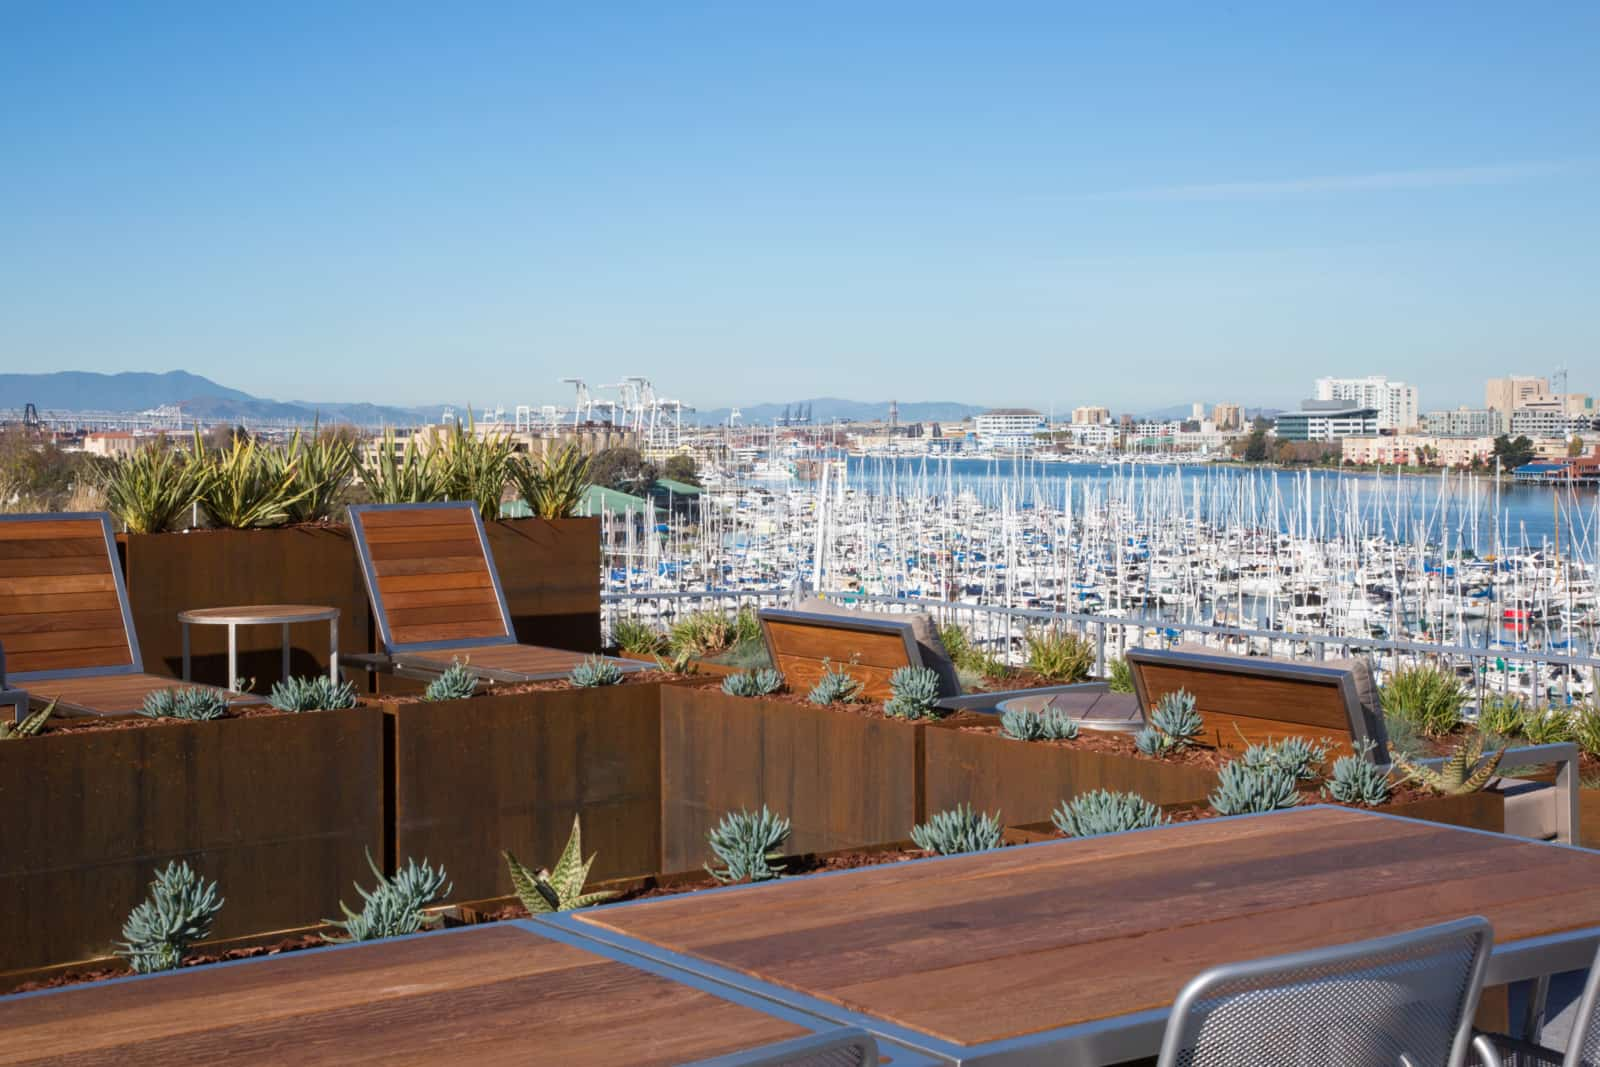 Rooftop lounges, table and chairs with marina view in background.